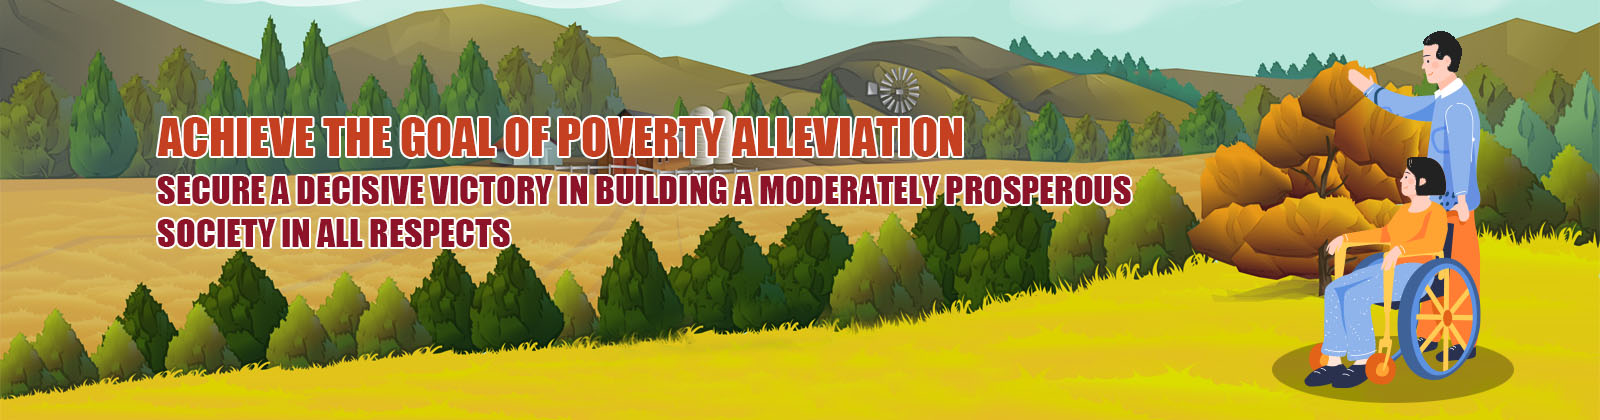 Achieve the goal of poverty alleviation